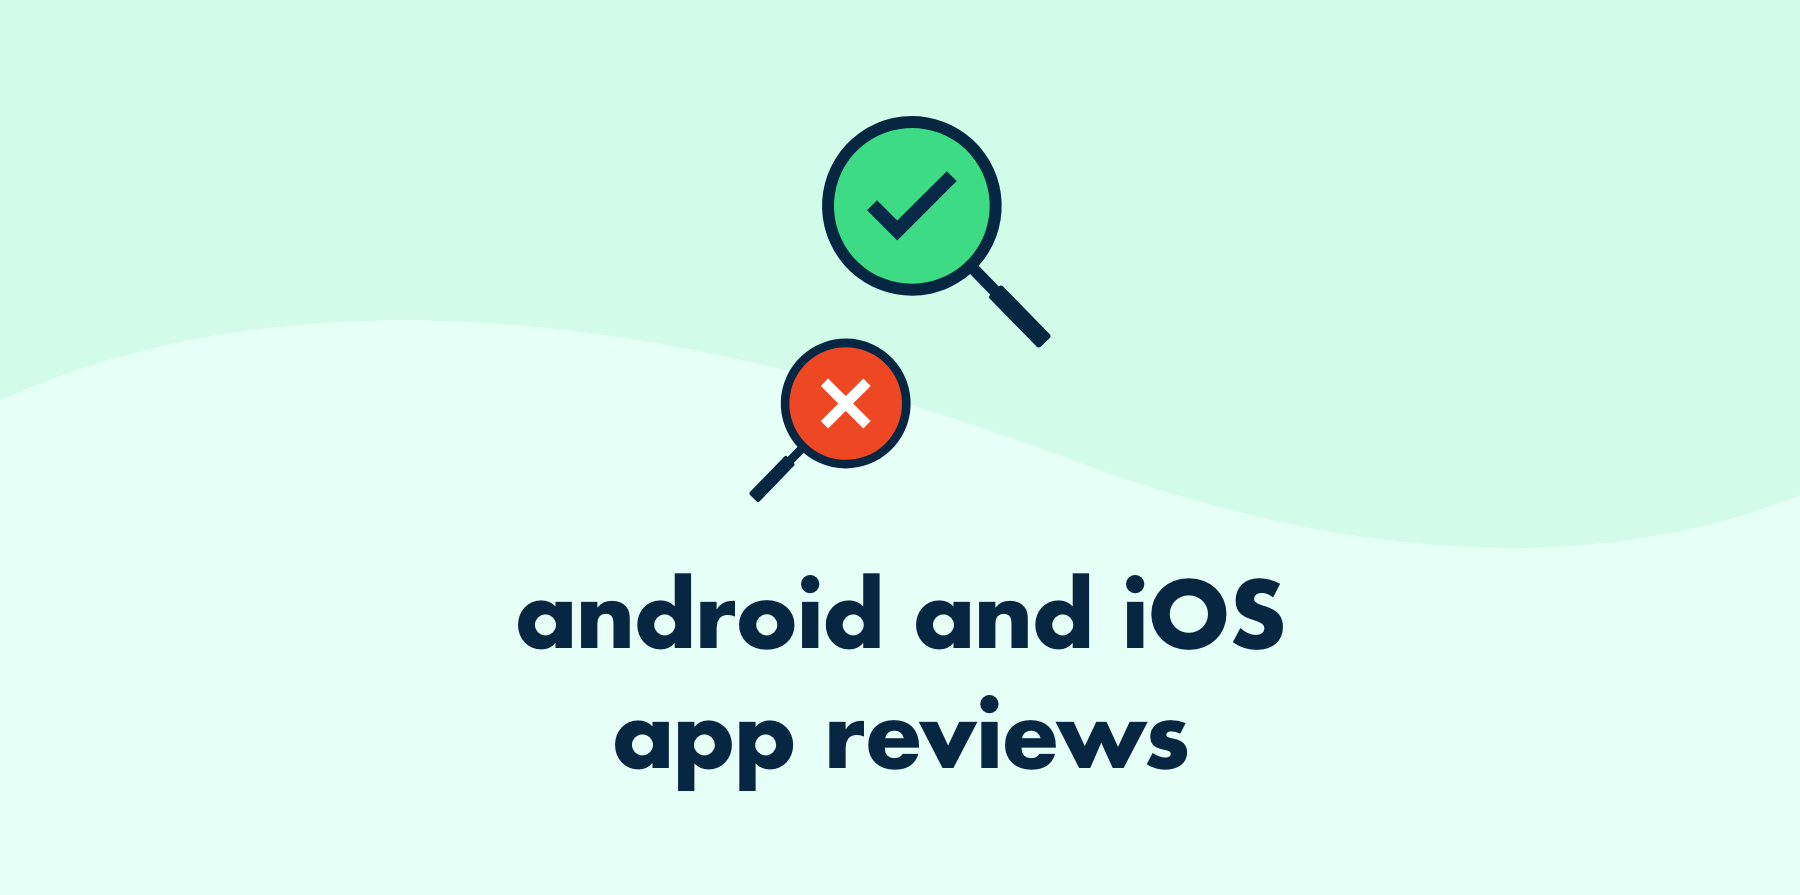 Android and iOS App Reviews Image